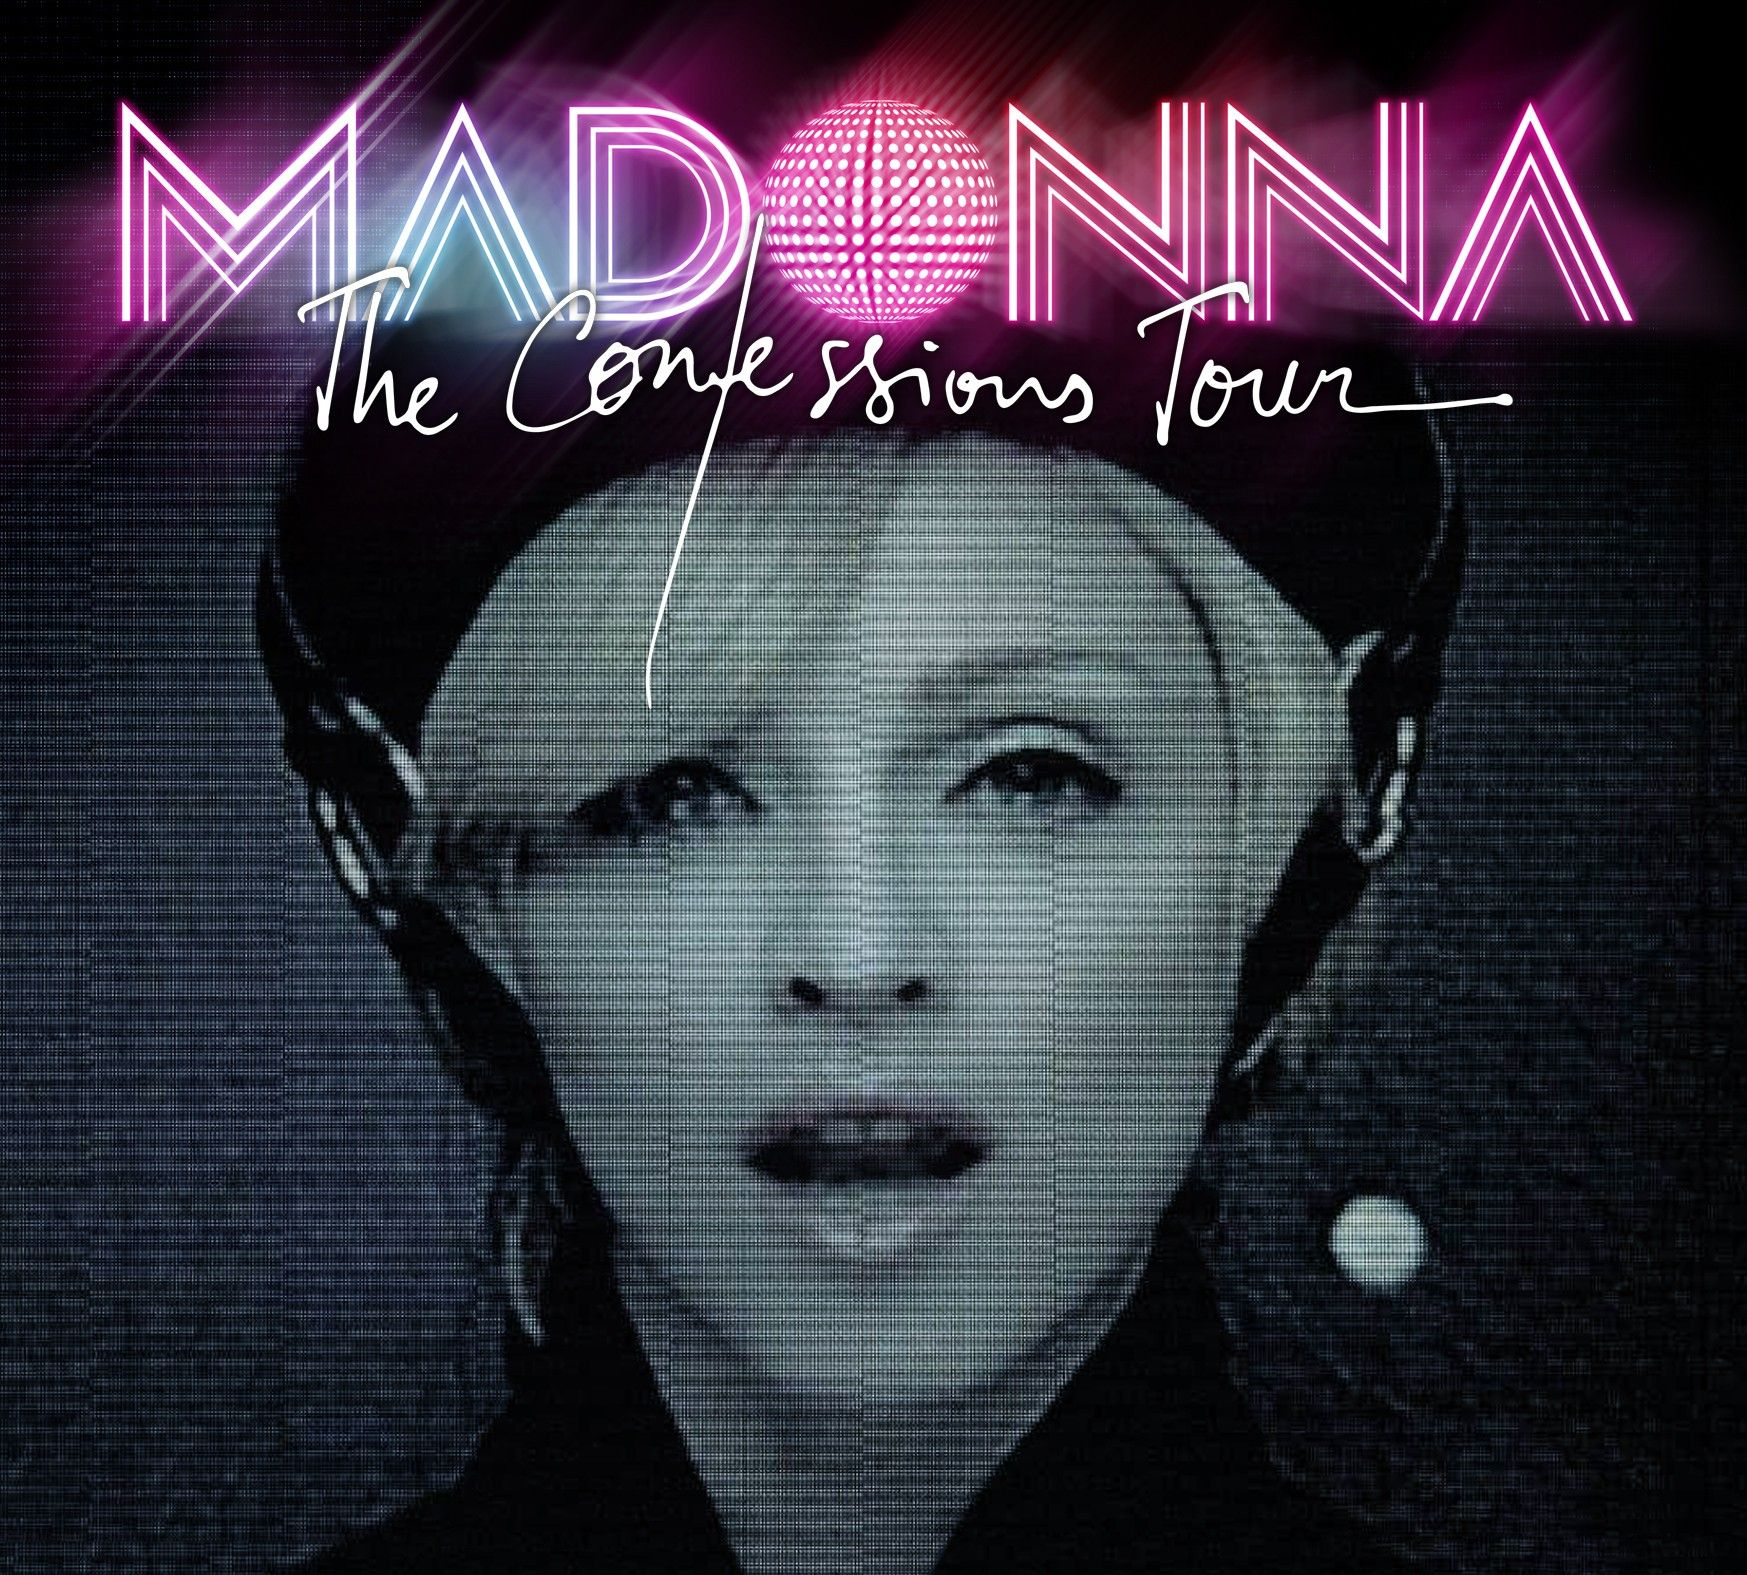 Madonna - The Confessions Tour album cover